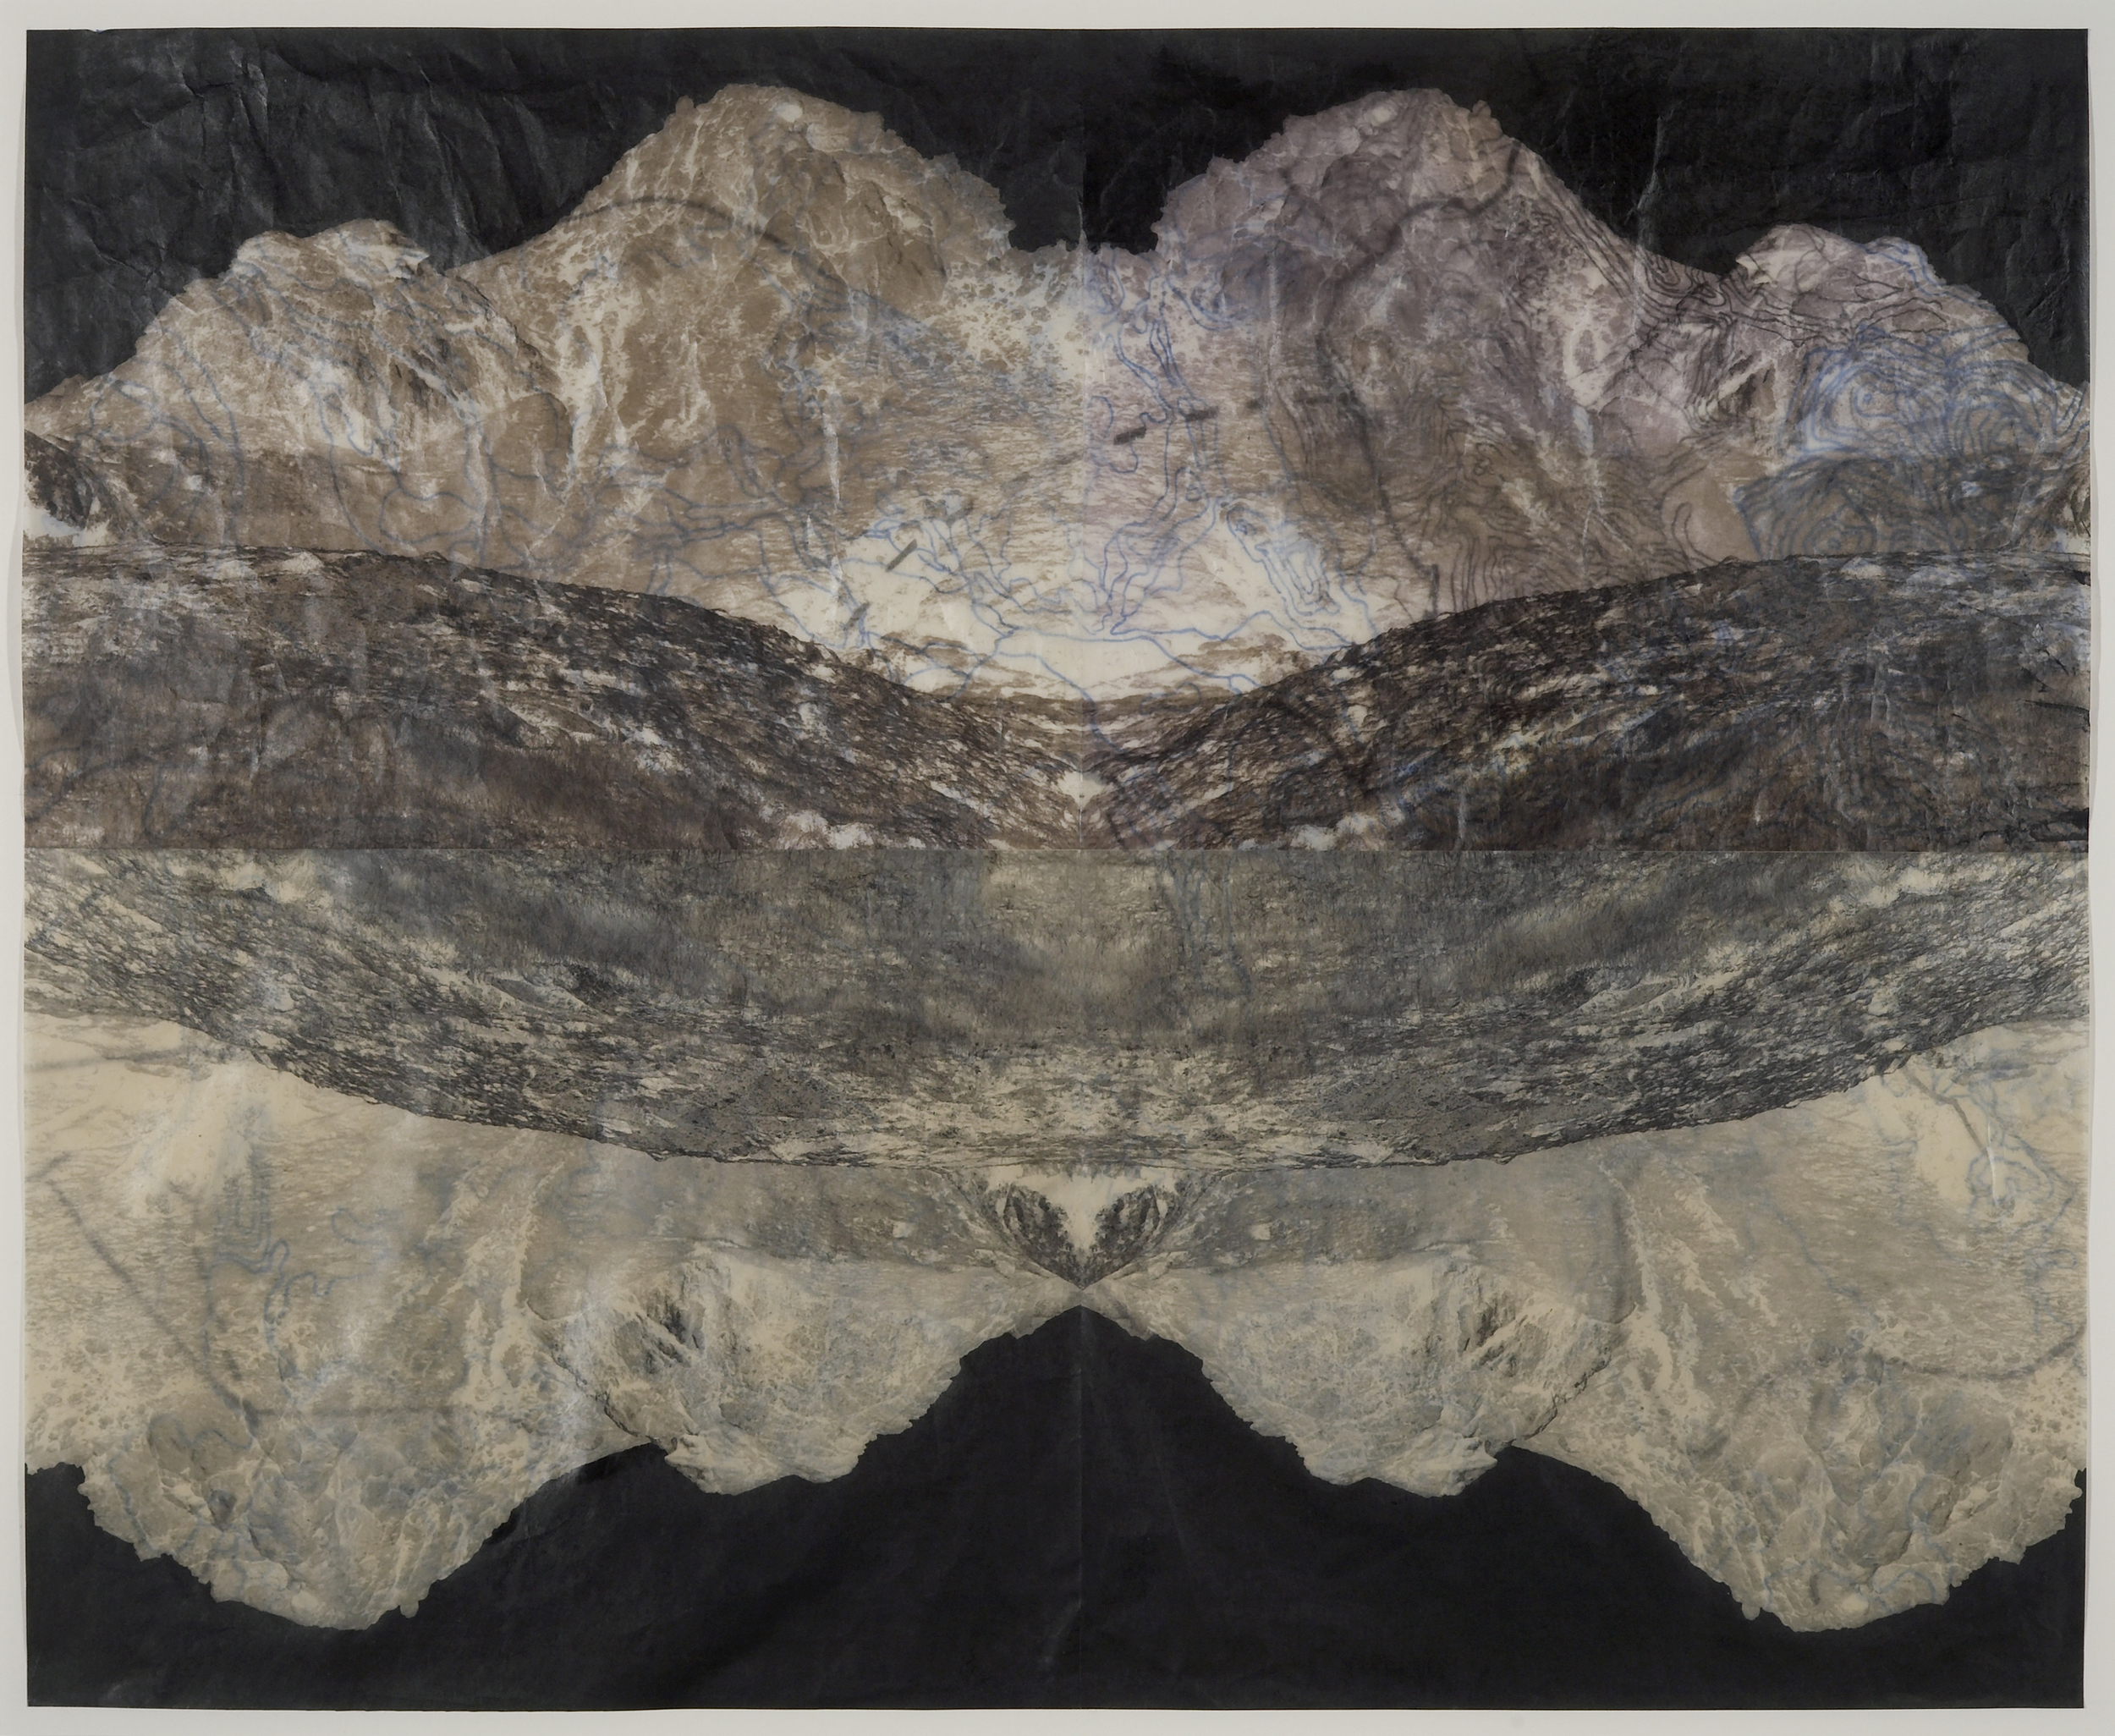 """Pyroclasitite Negative, 2006   Digital pigment print on gampi, oil paint and wax in layers   22"""" X 27"""""""